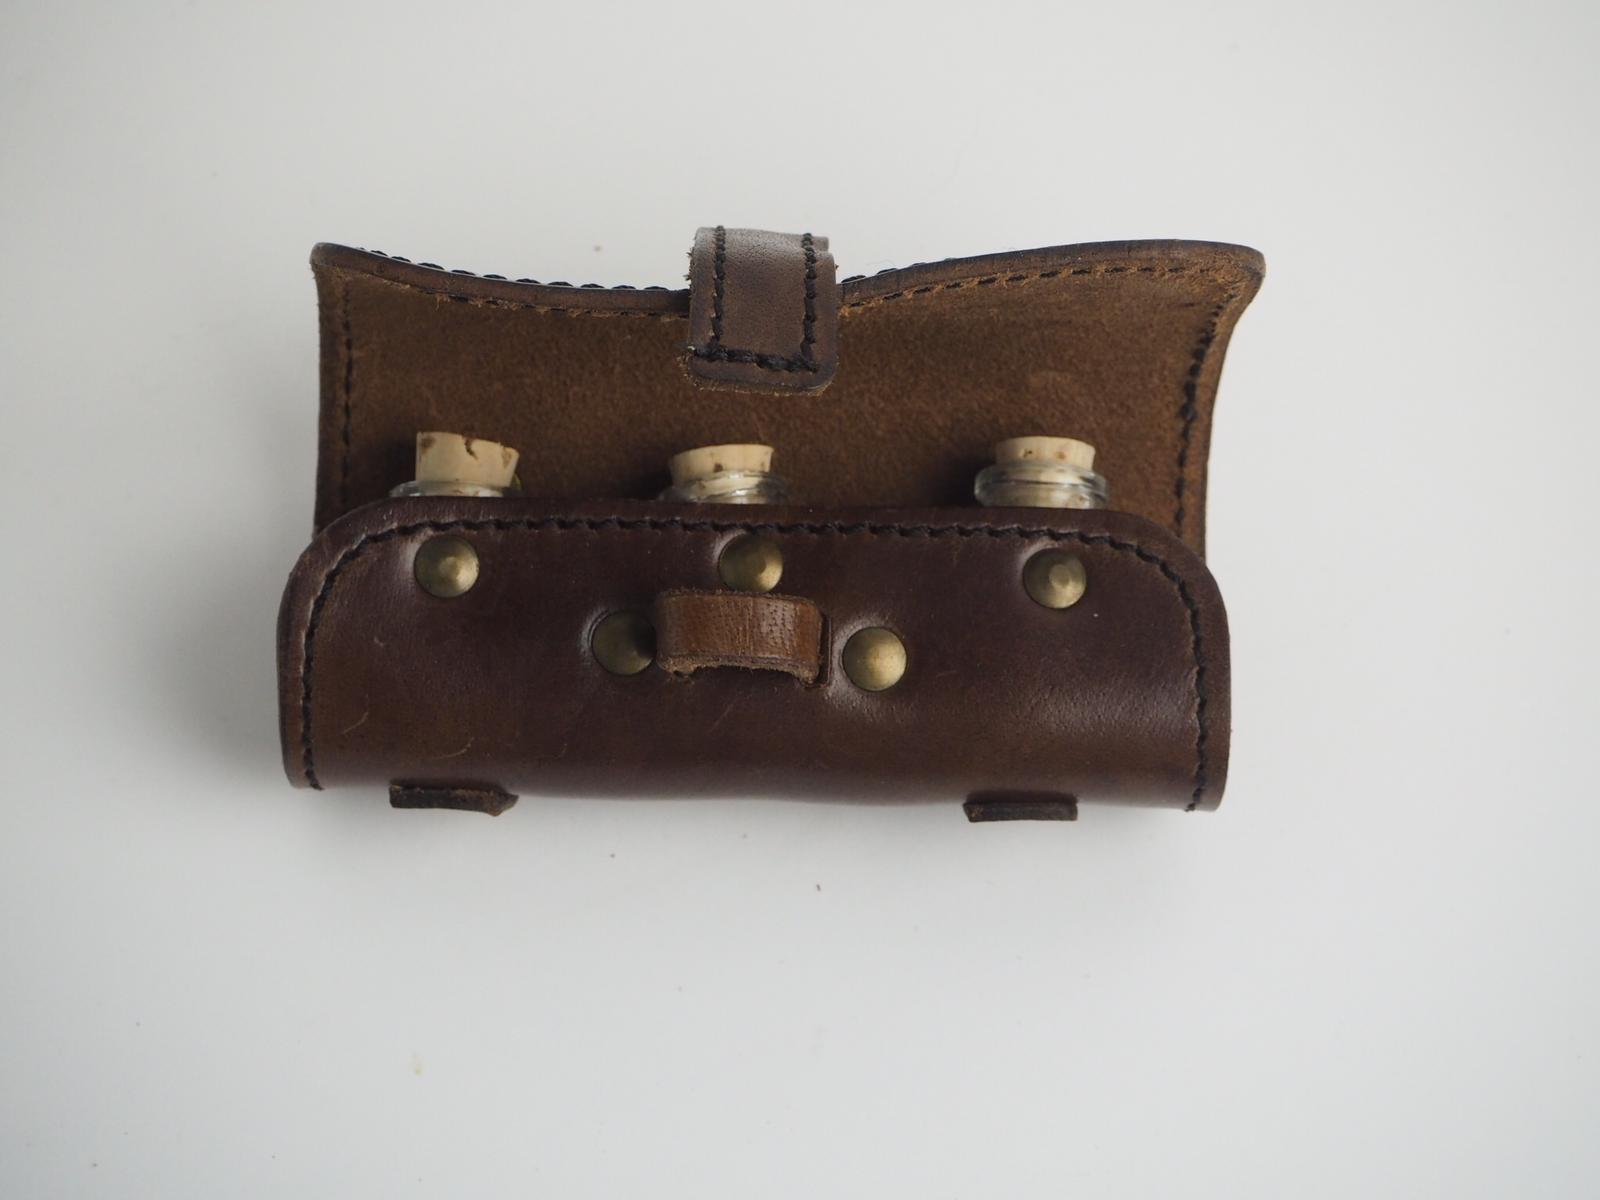 Potion Holder in leather with 3 bottles